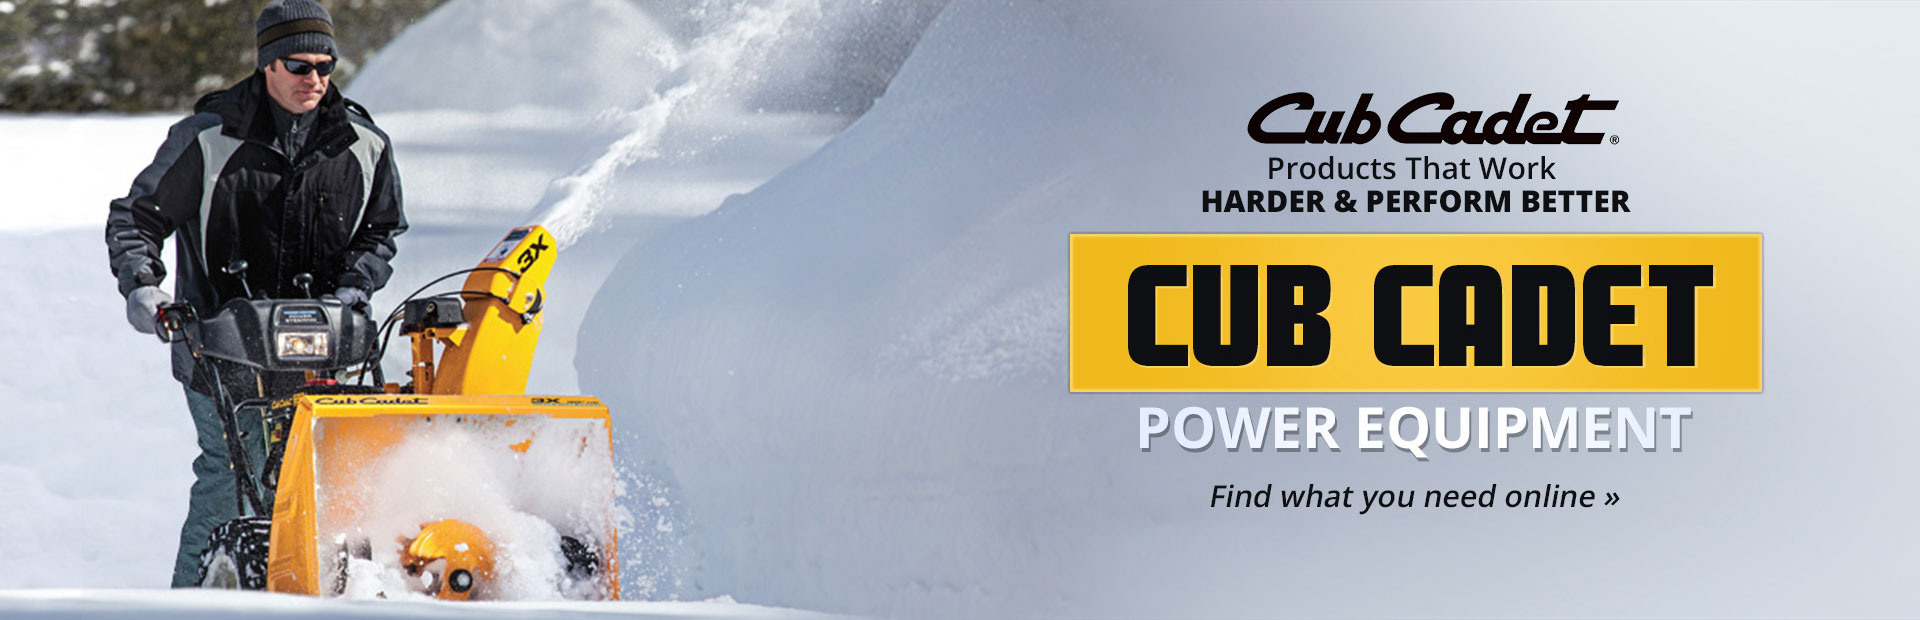 Cub Cadet Power Equipment: Click here to view the models.